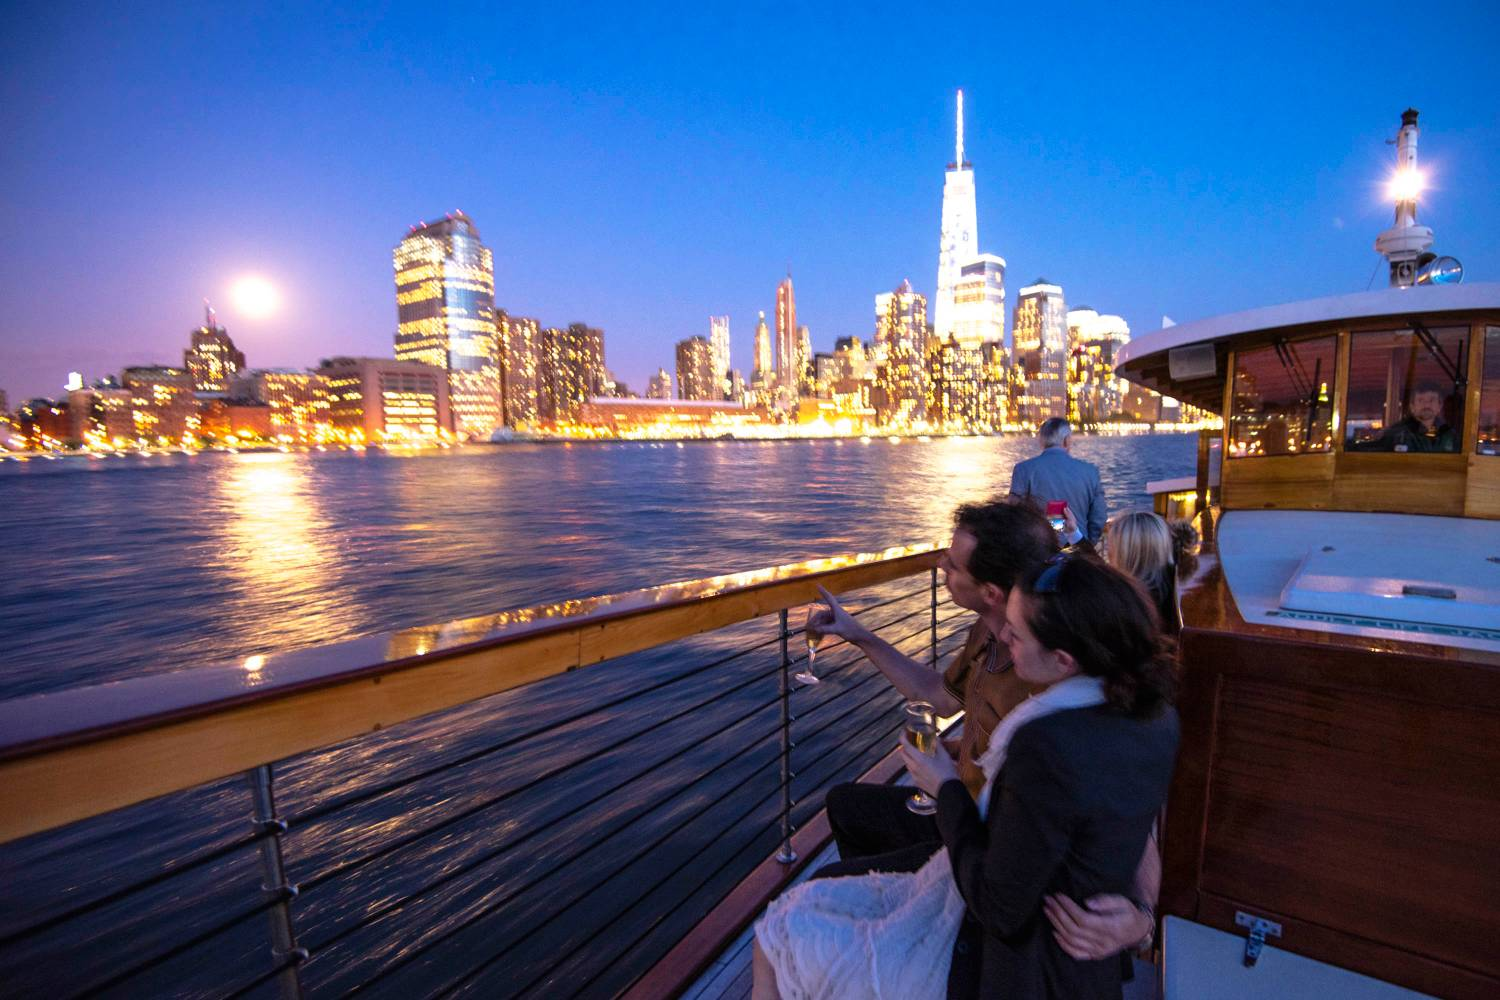 5 NEW YORK CITY EVENTS TO ENCHANT YOUR DATE THIS VALENTINE'S DAY